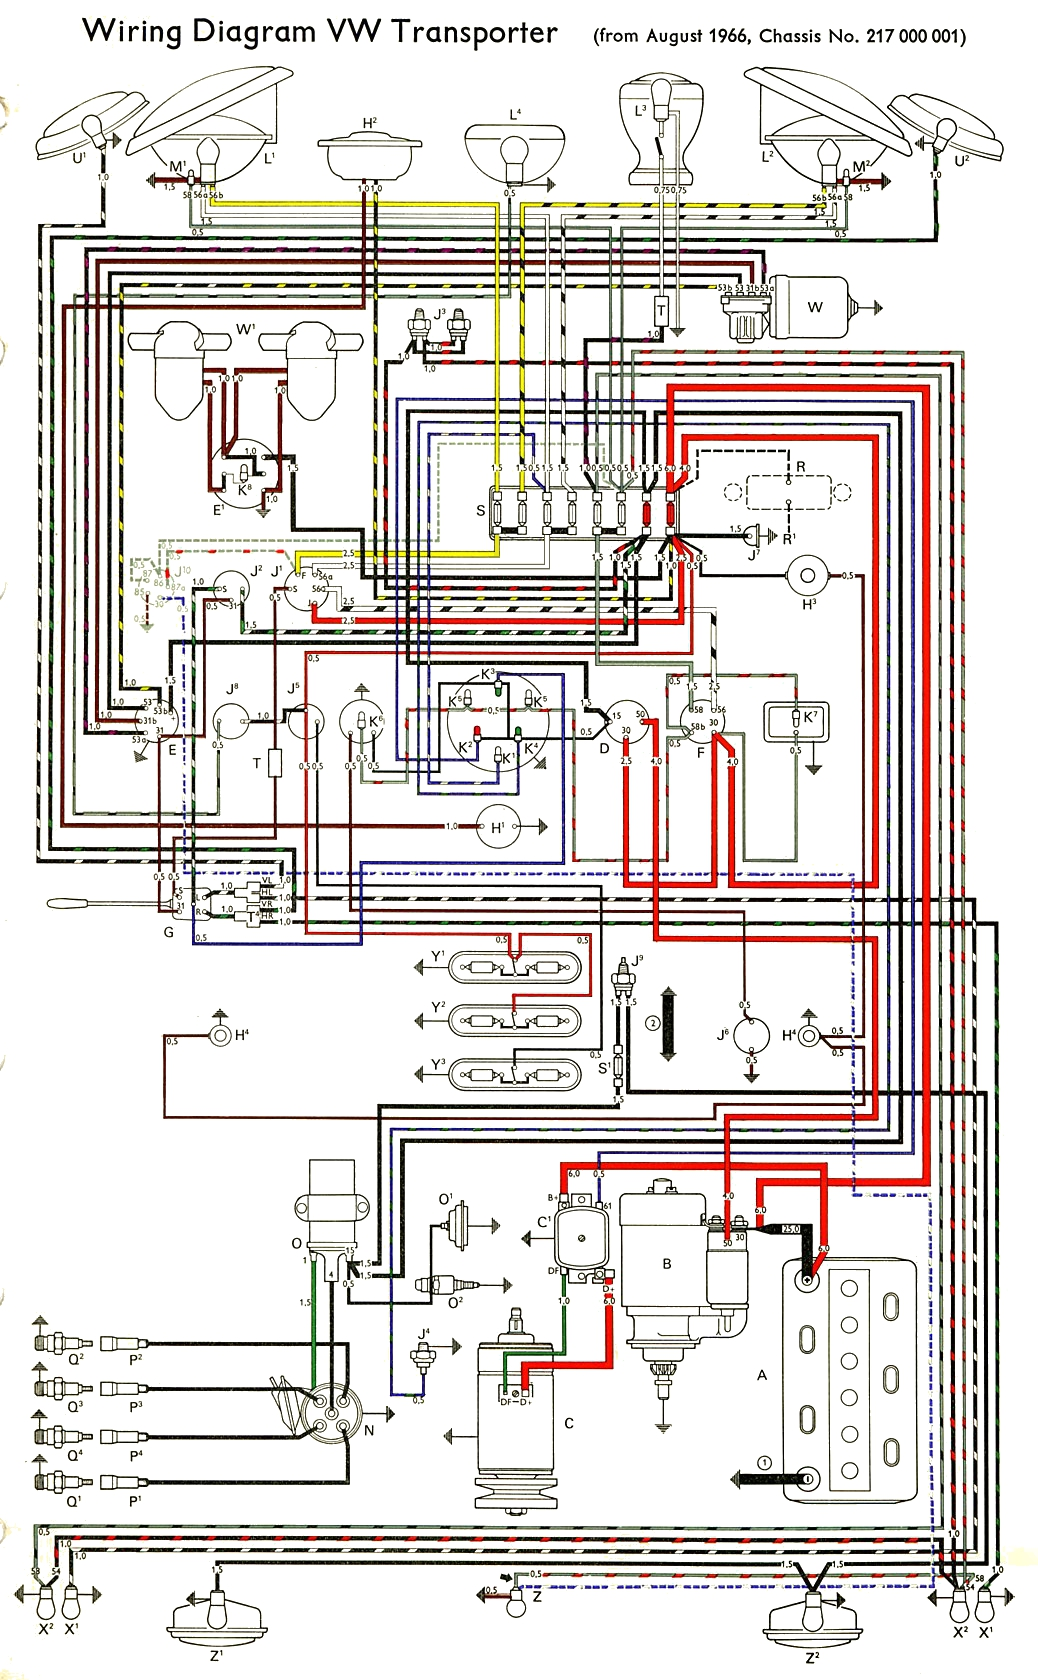 bus_67 ambulance wiring diagram elevator schematic diagram wiring diagram horton 4160 wiring diagram at gsmportal.co